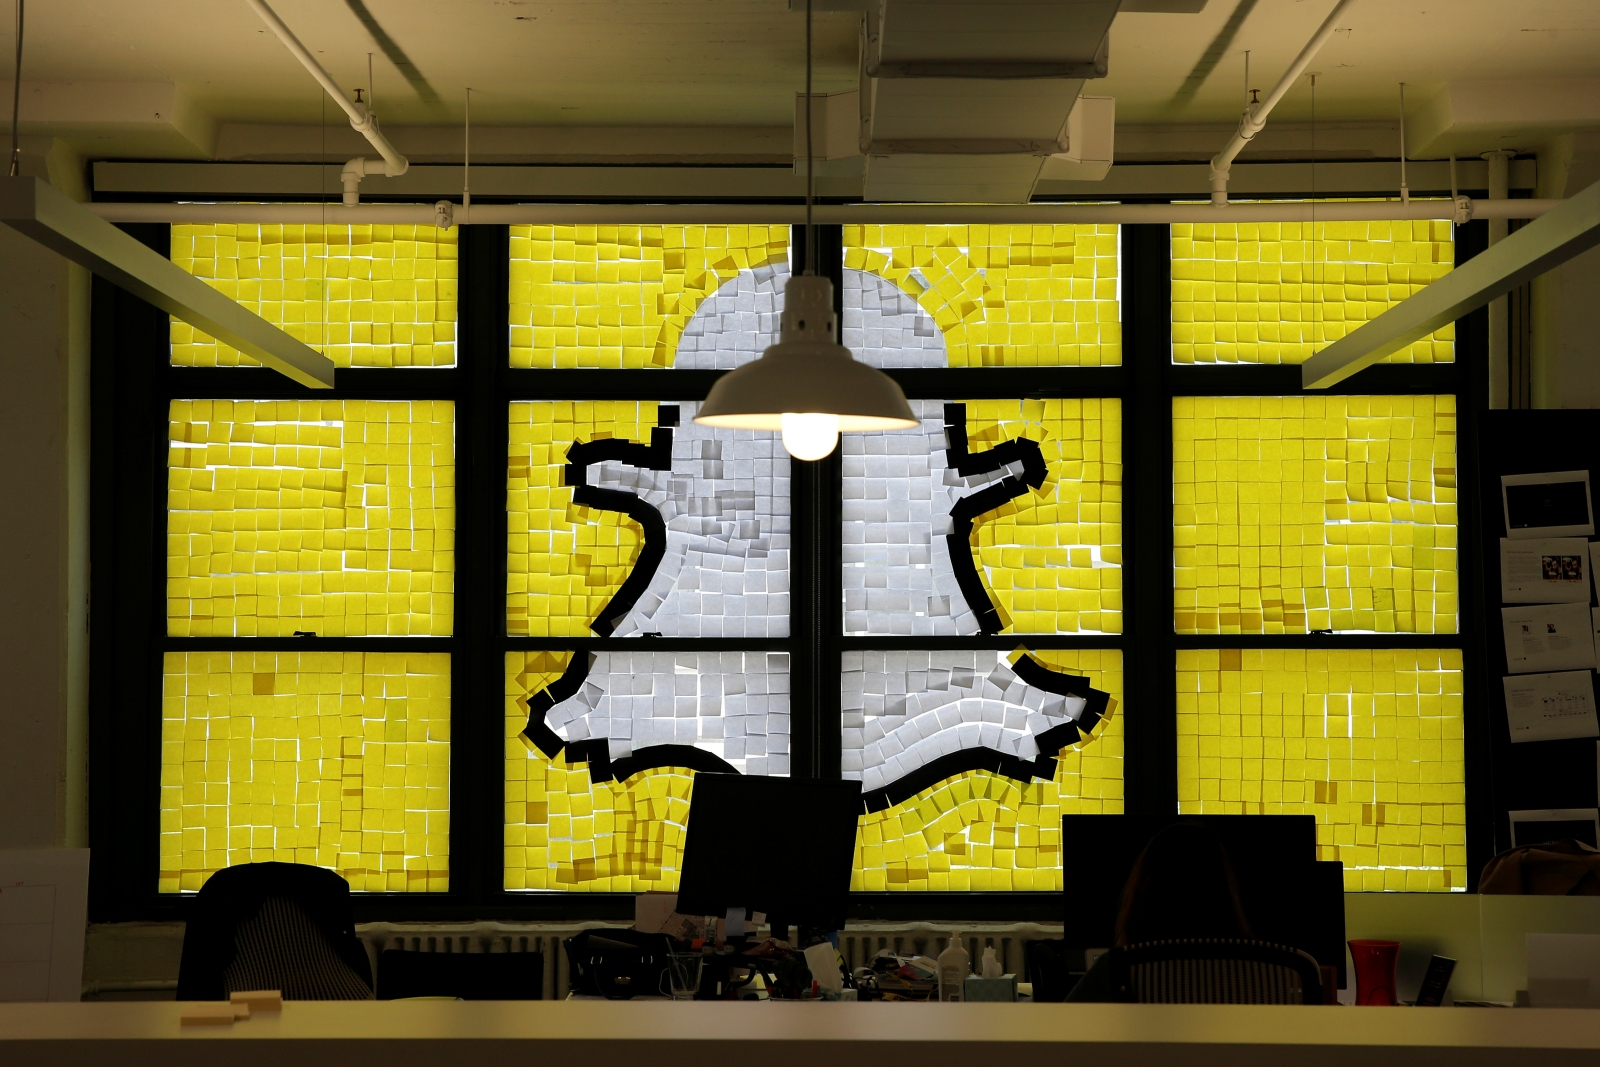 Snapchat working on augmented reality hardware